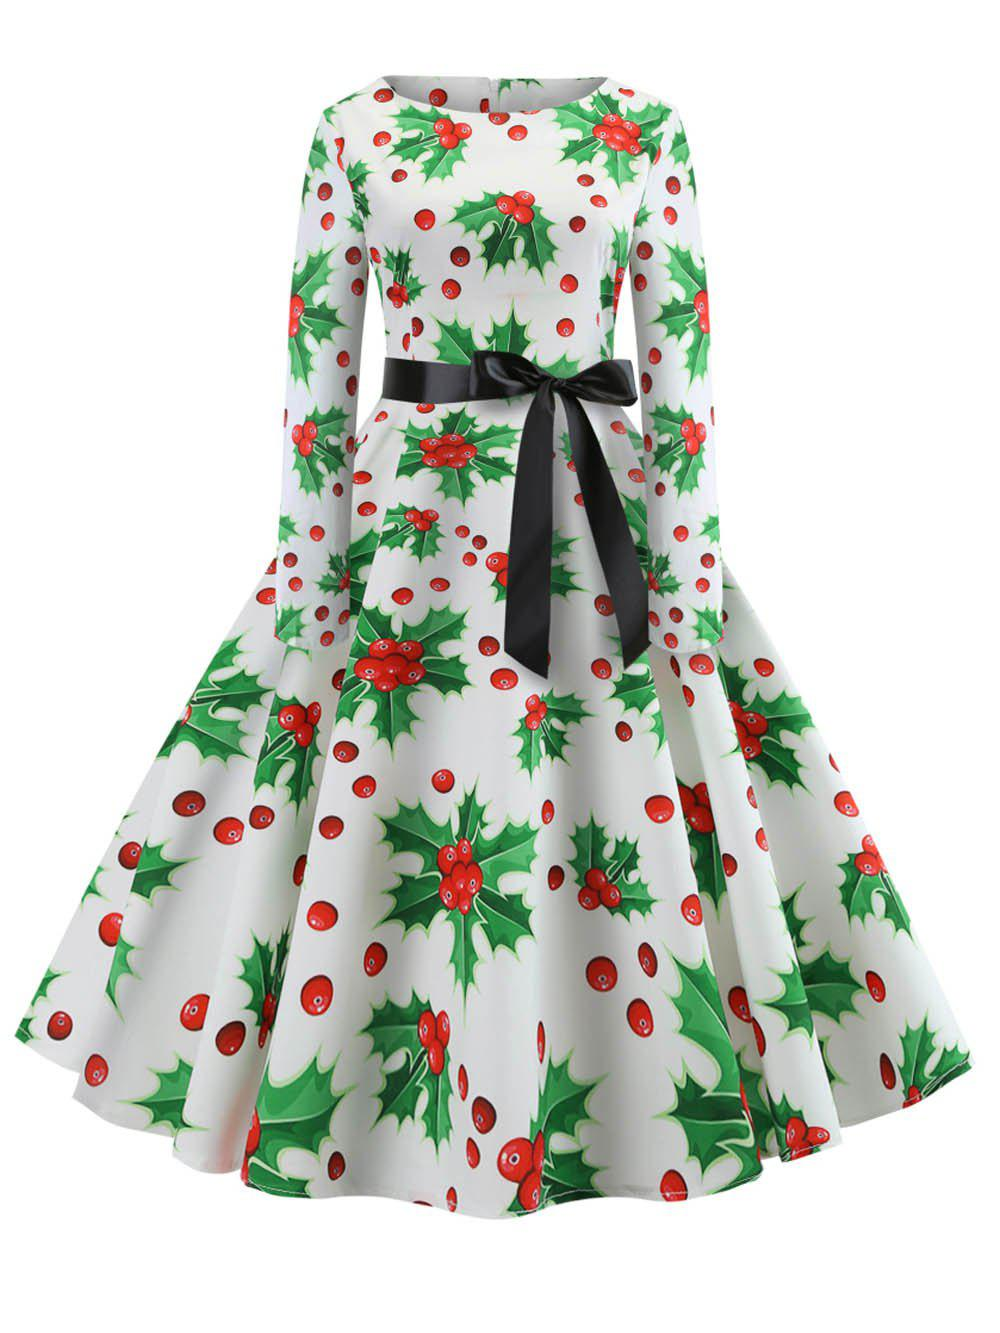 Hepburn Vintage Series Women Dress Spring And Winter Round Neck Christmas Printing Stitching Design Long Sleeve Belt Corset Retro Dress - WHITE S